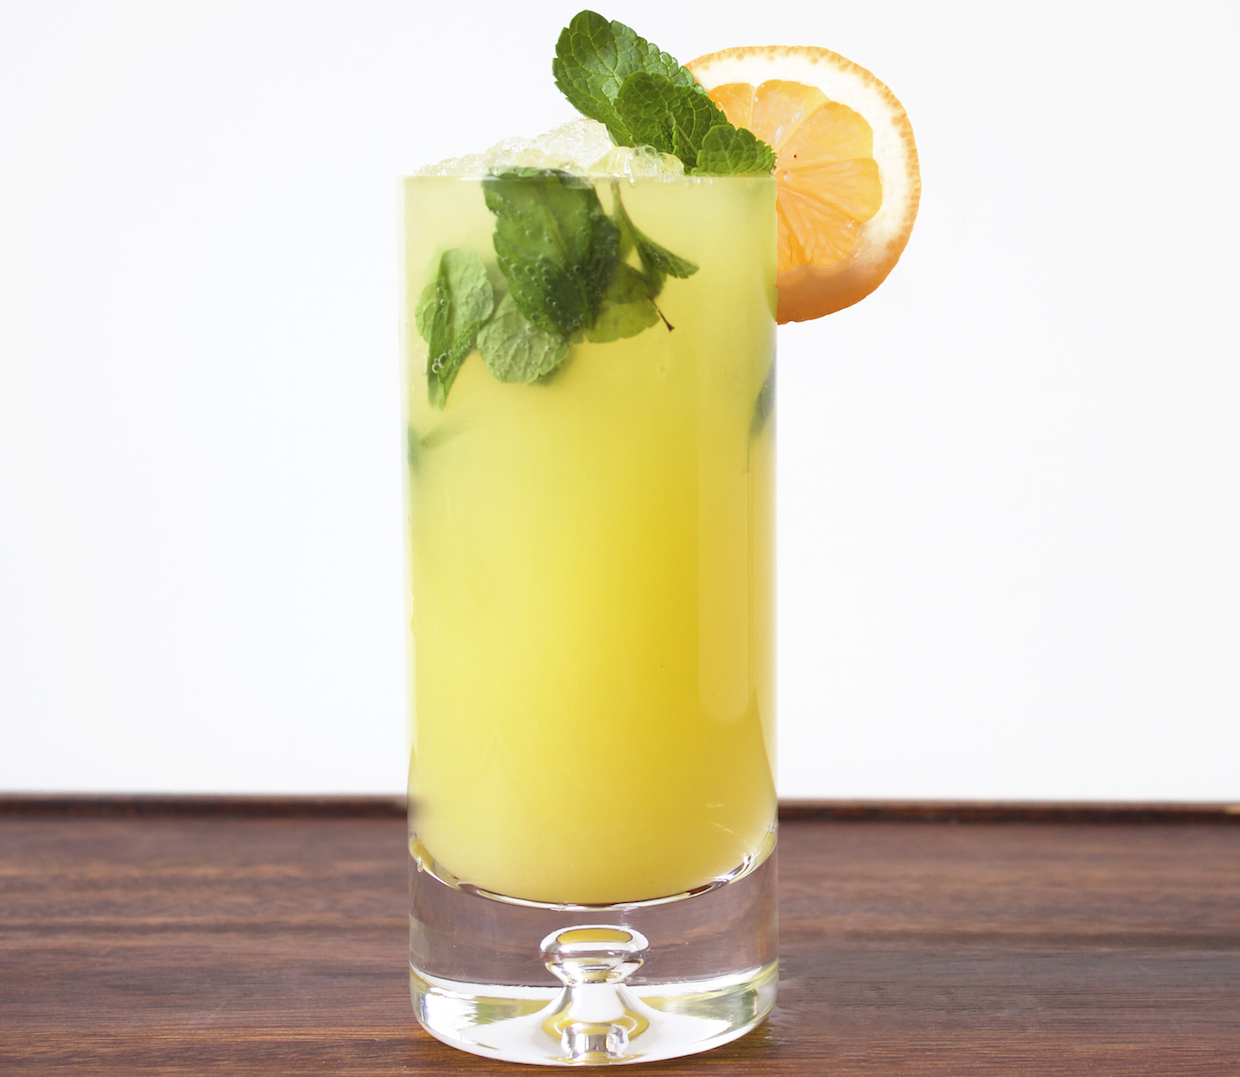 These Will Get You Drunk: April Fools, They're Mocktails